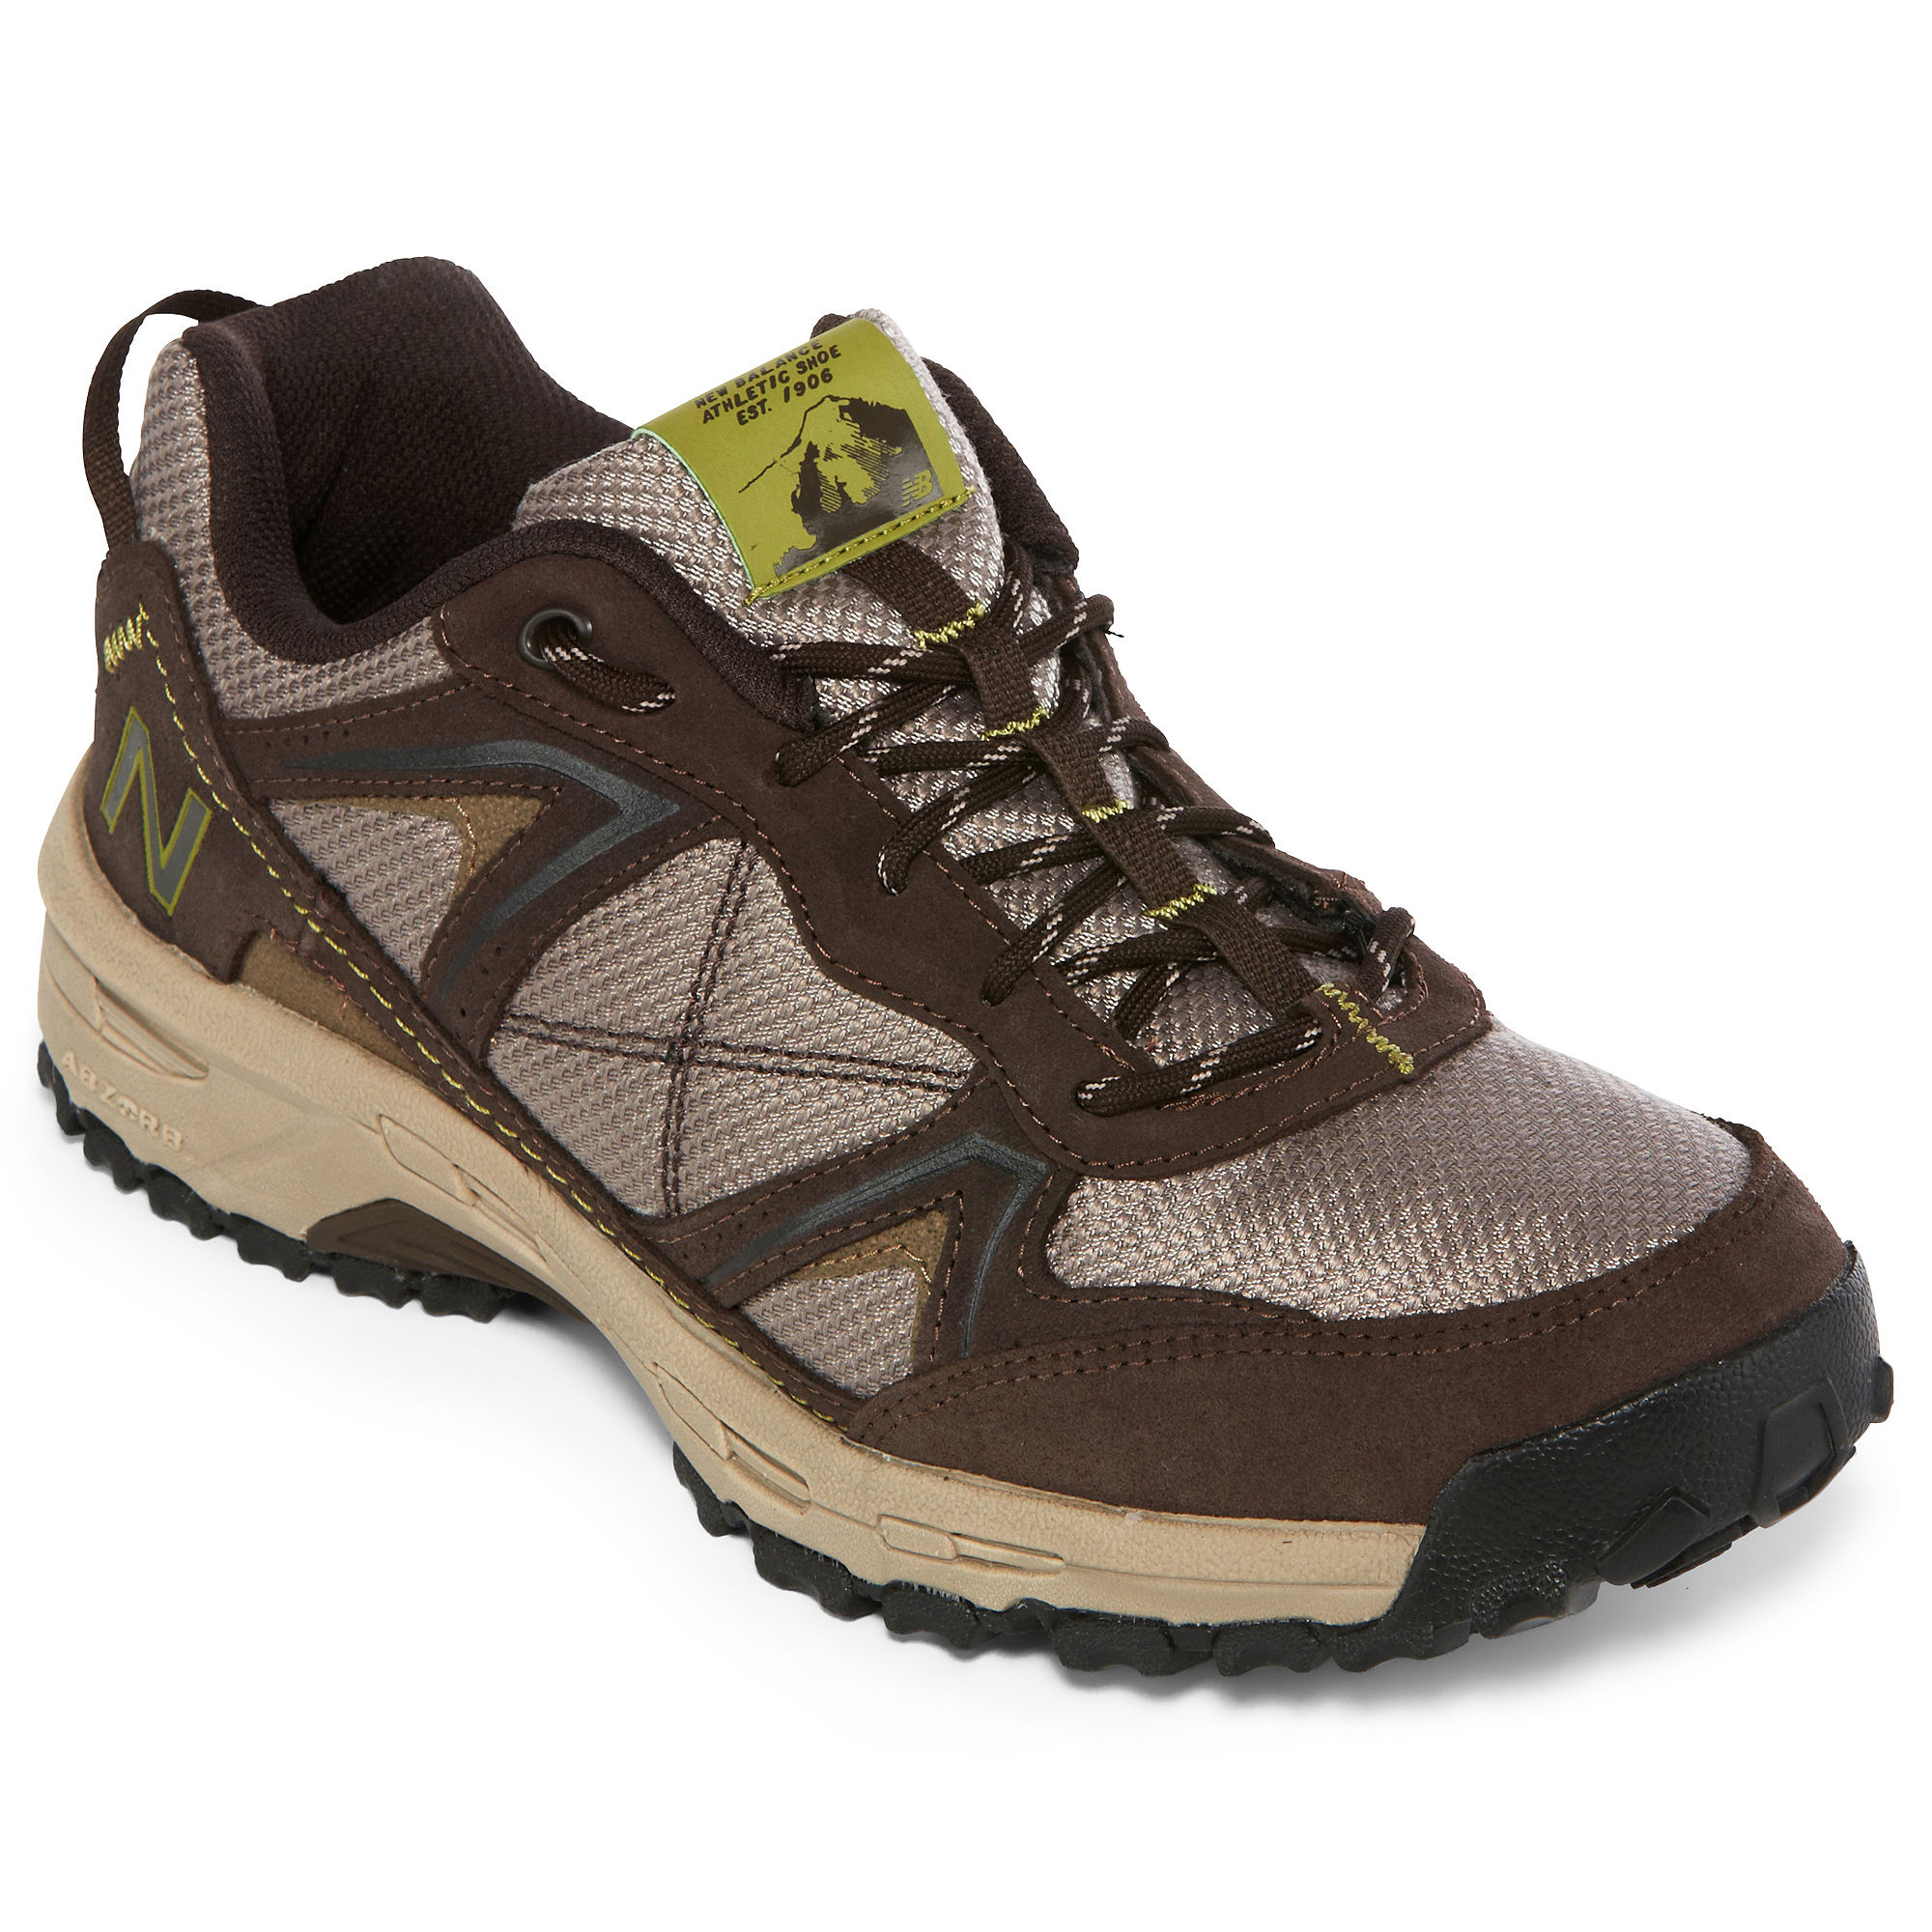 20d98eae402b2 ... UPC 602850082146 product image for New Balance 659 Mens Athletic Shoes  | upcitemdb.com